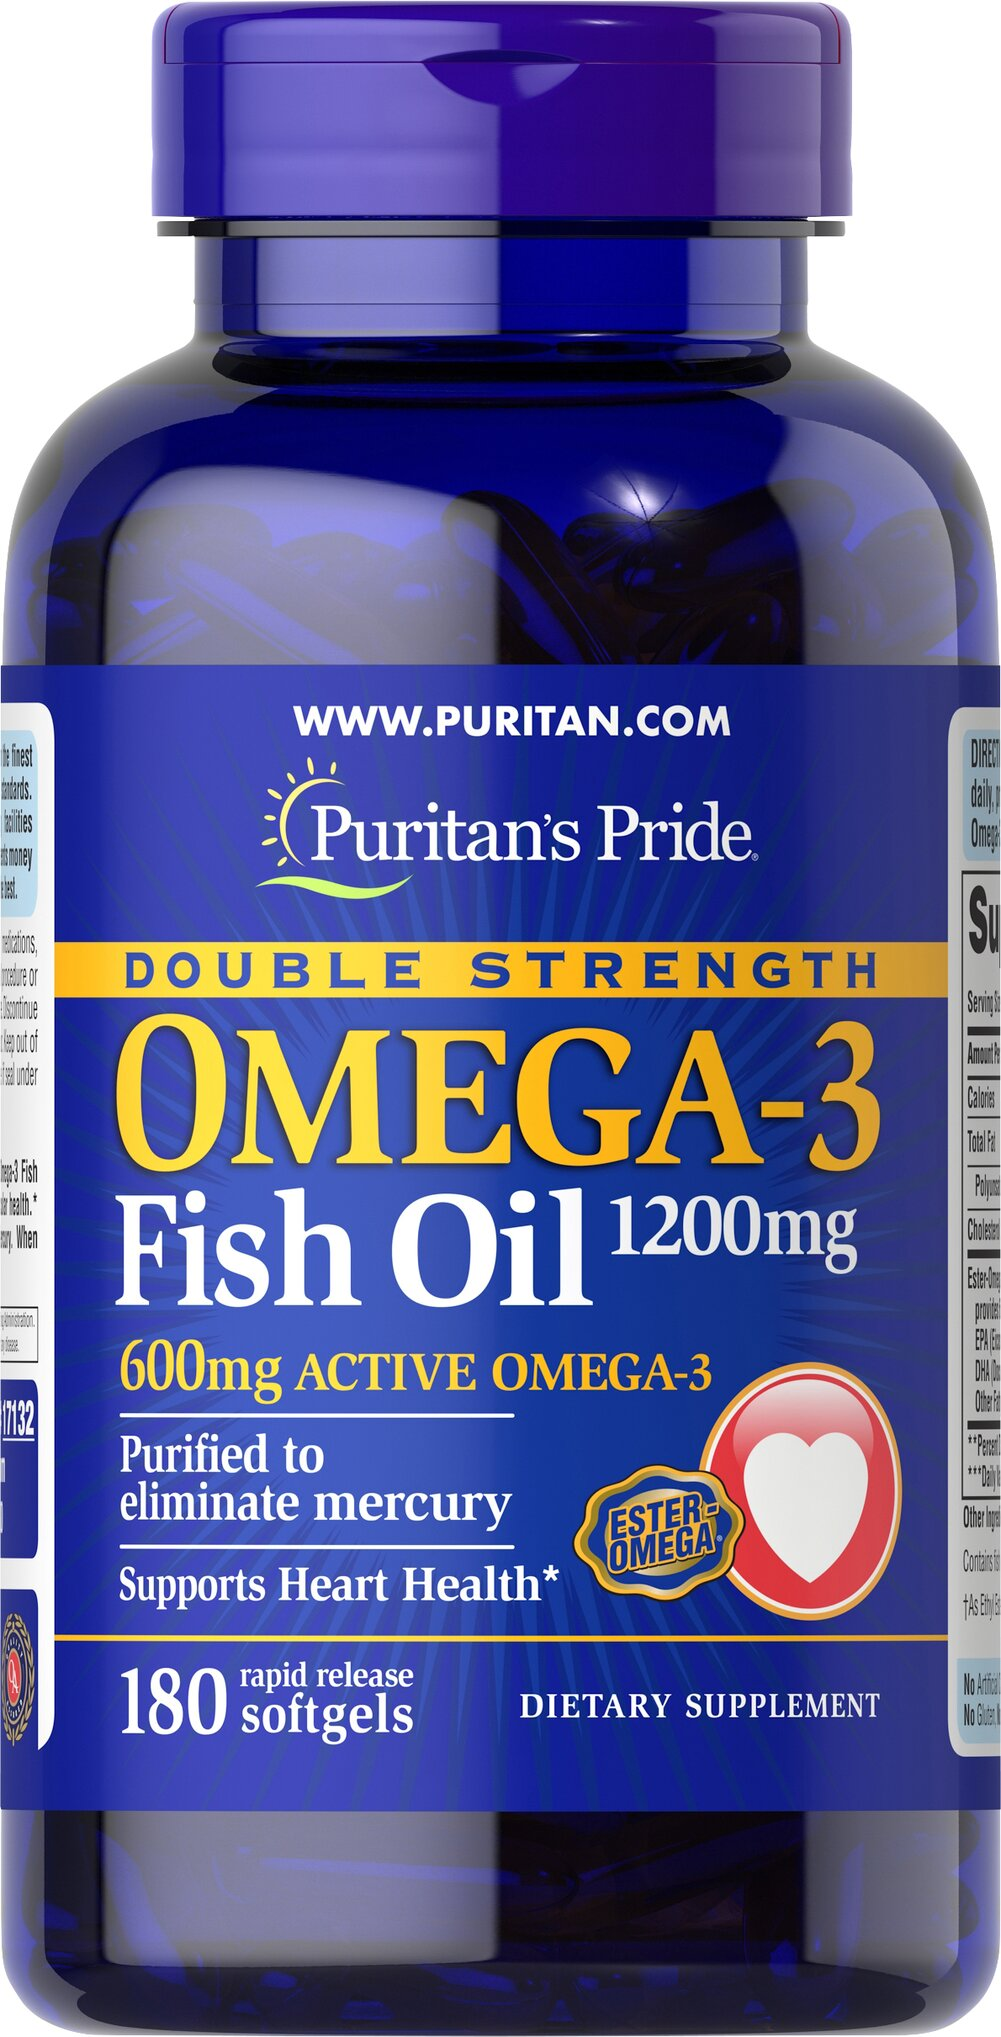 Double Strength Omega-3 Fish Oil 1200 mg  180 Softgels 1200 mg $26.59